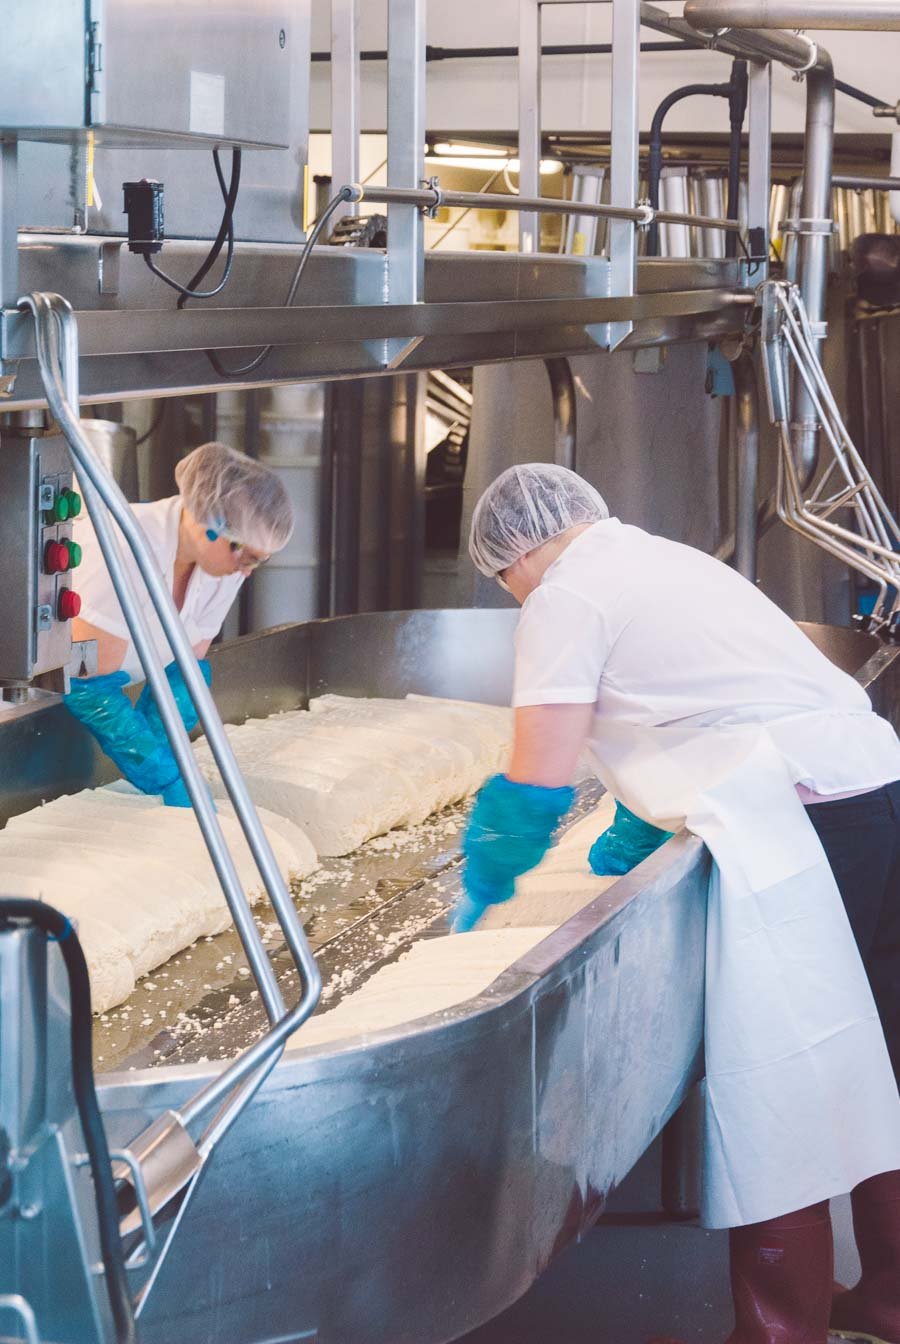 Two Beecher's Homemade Cheese employees making cheese in a metal tub.